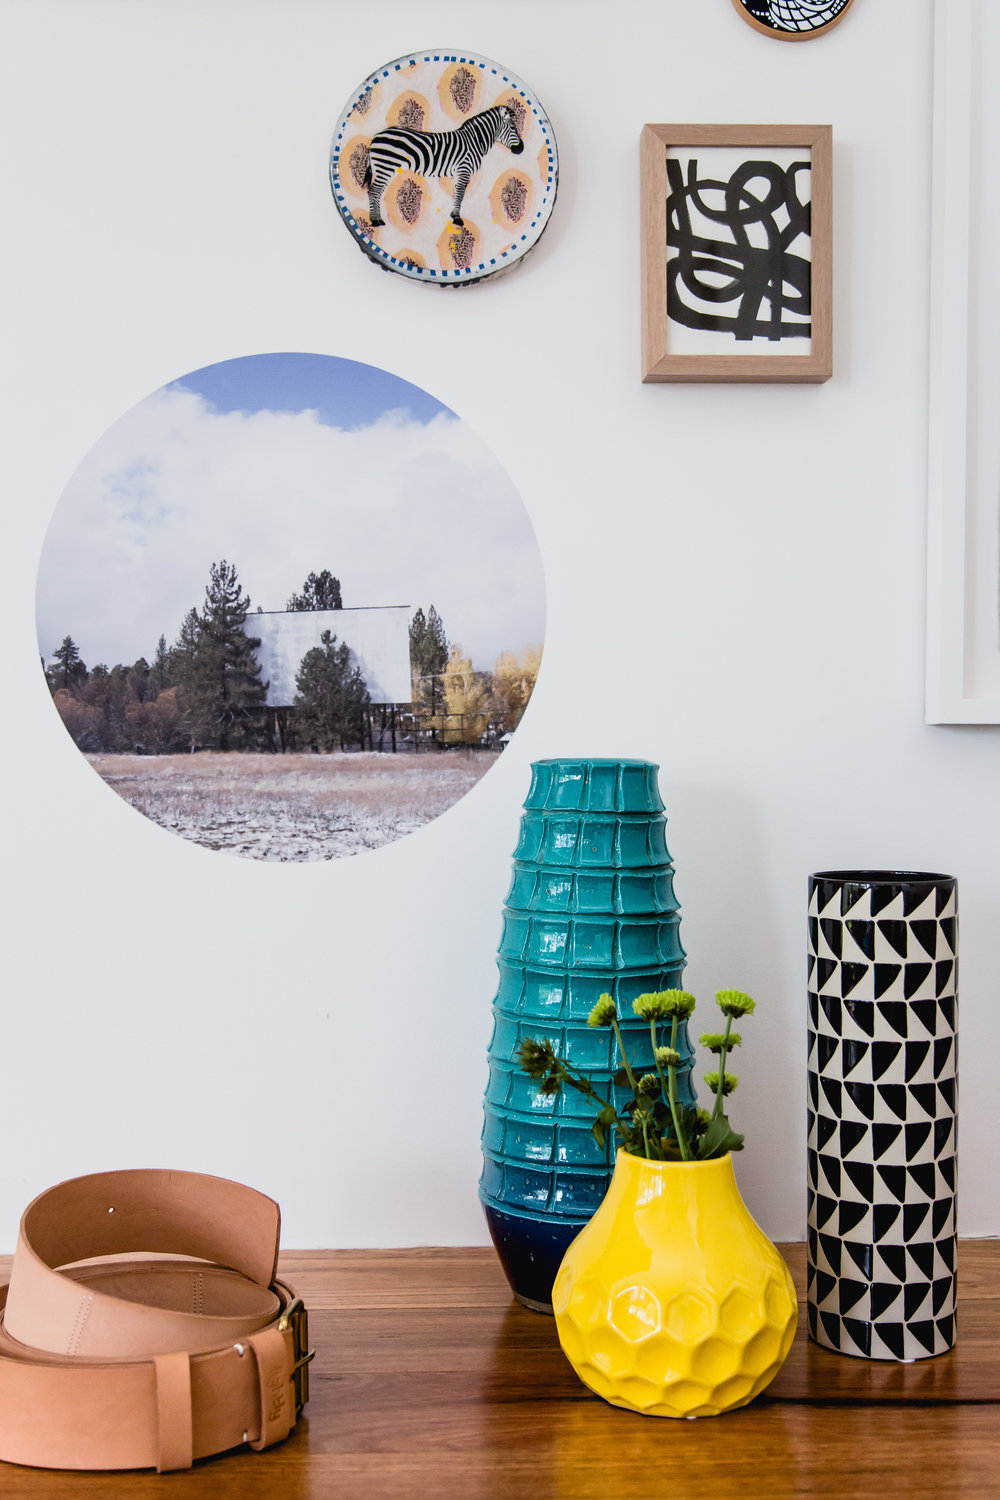 Styling by Fiona PArry-Jones /Von Haus Design Studio